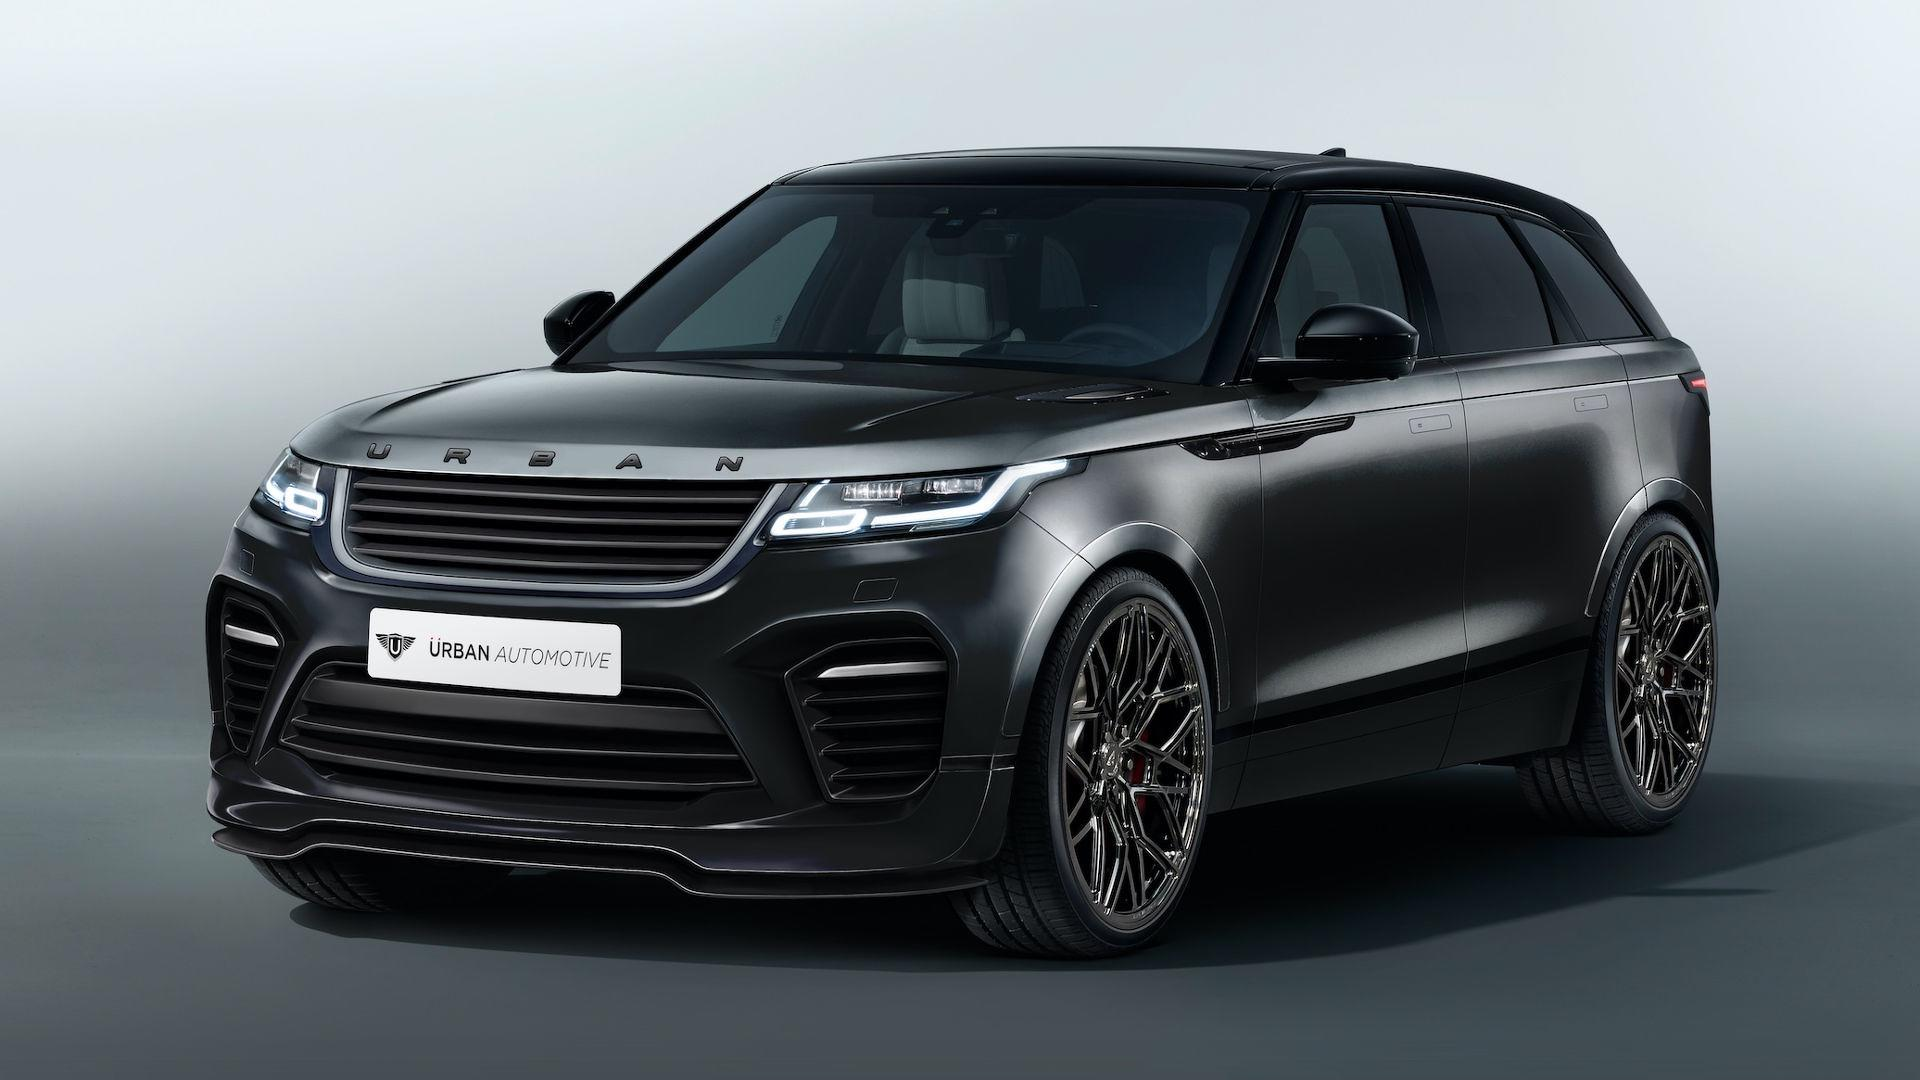 Range Rover Velar Urban Automotive